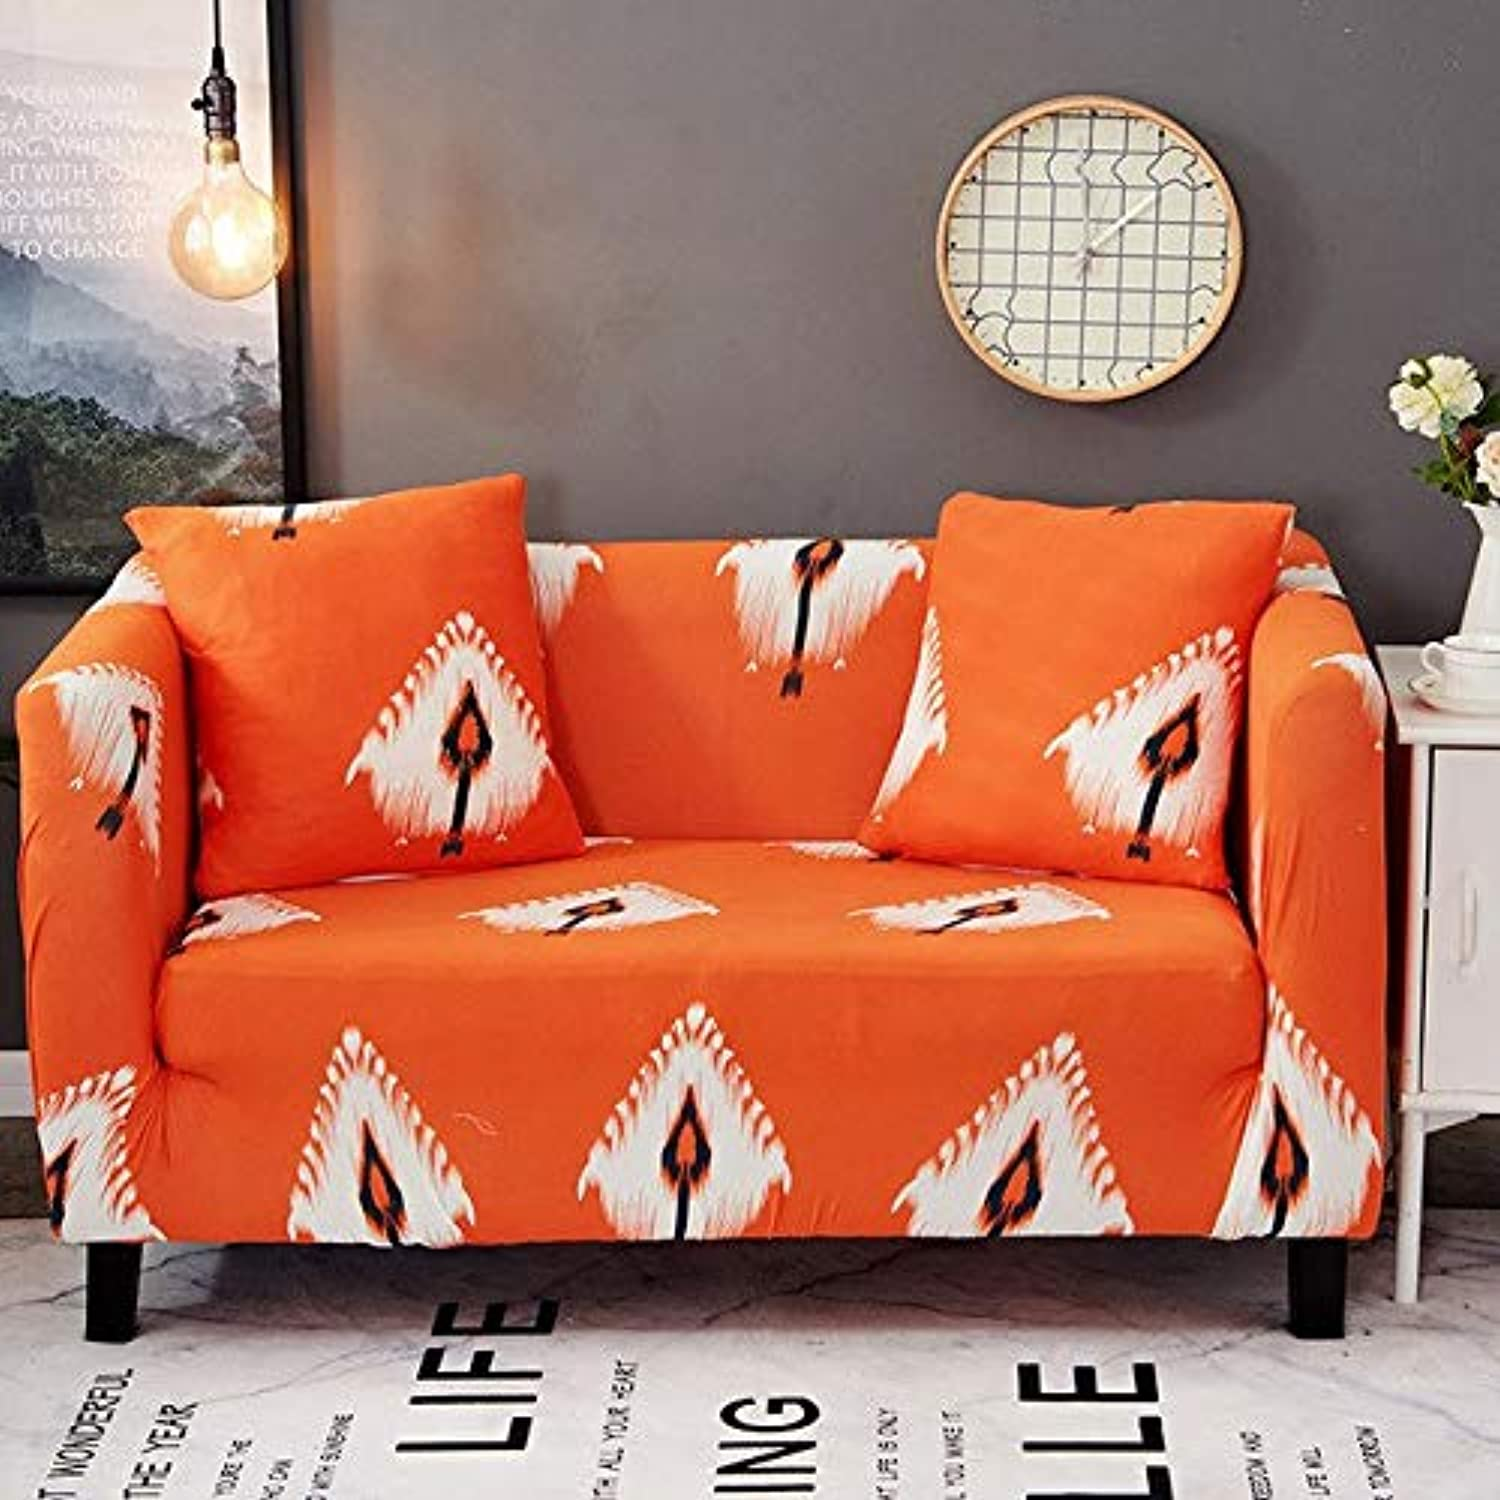 Farmerly 1pcs Flower Leaf Pattern Soft Stretch Sofa Cover Home Decor Spandex Furniture Covers Decoration Covering Hotel Slipcover 014   K, Three seat